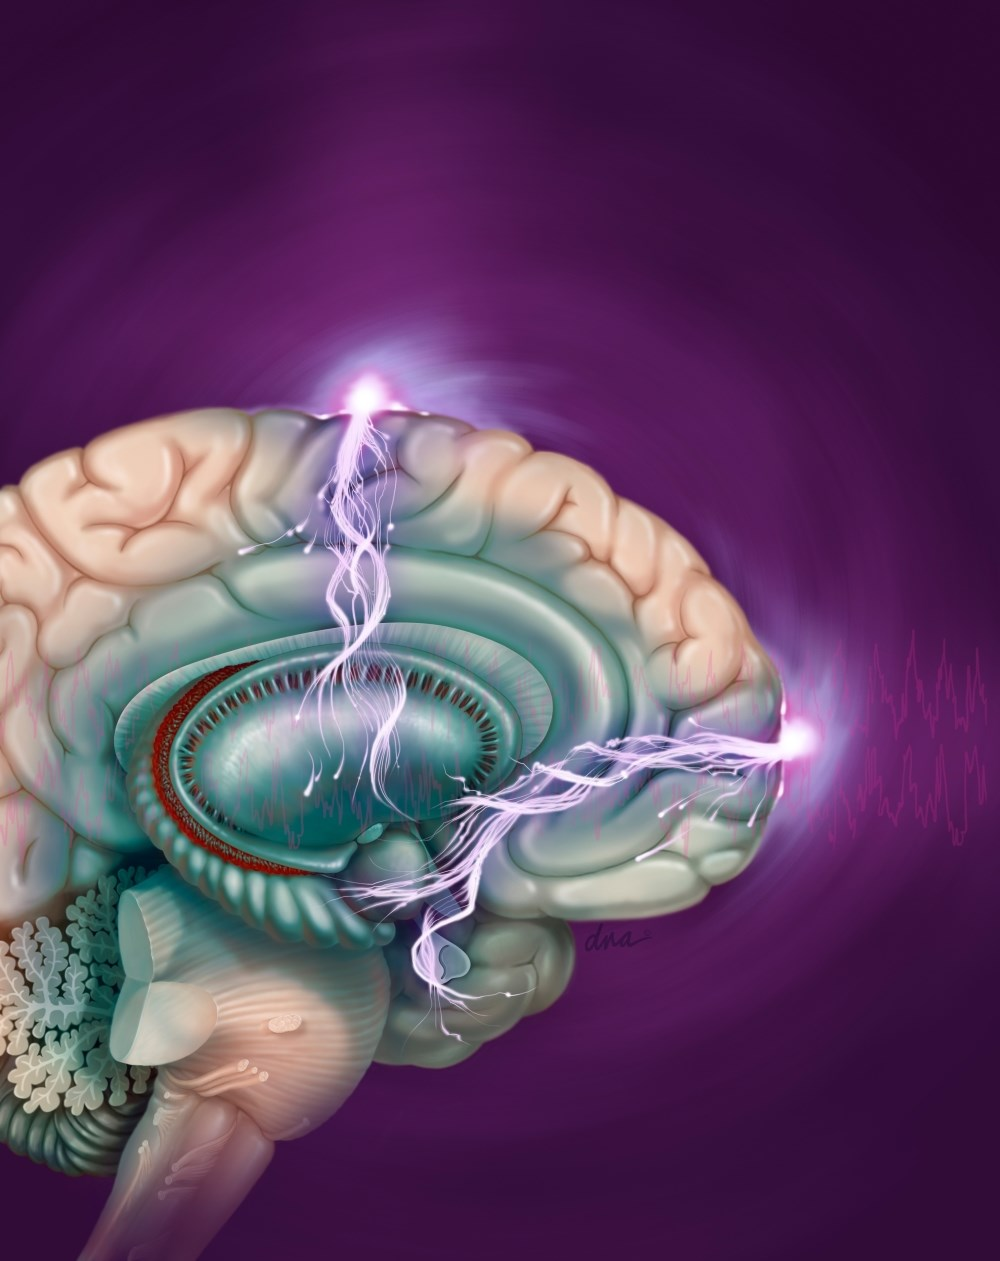 A current study investigated the effectiveness and cognitive effect of electroconvulsive therapy in conjunction with pharmacotherapy.